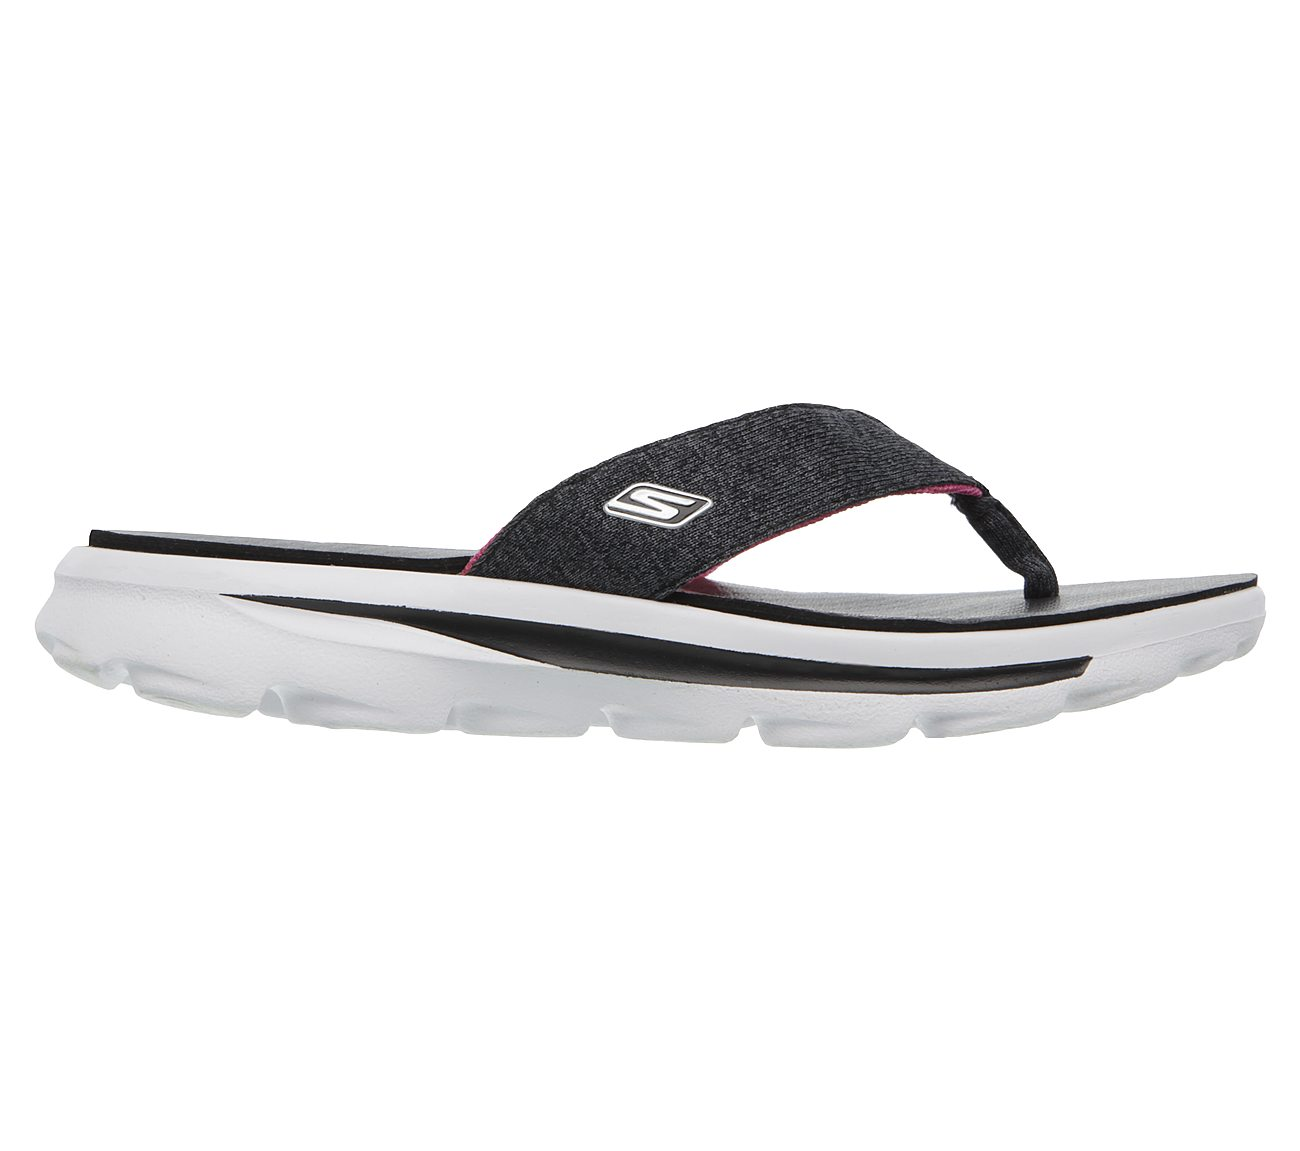 93795032cd87 Buy SKECHERS Skechers GOwalk Move - Solstice Skechers Performance ...